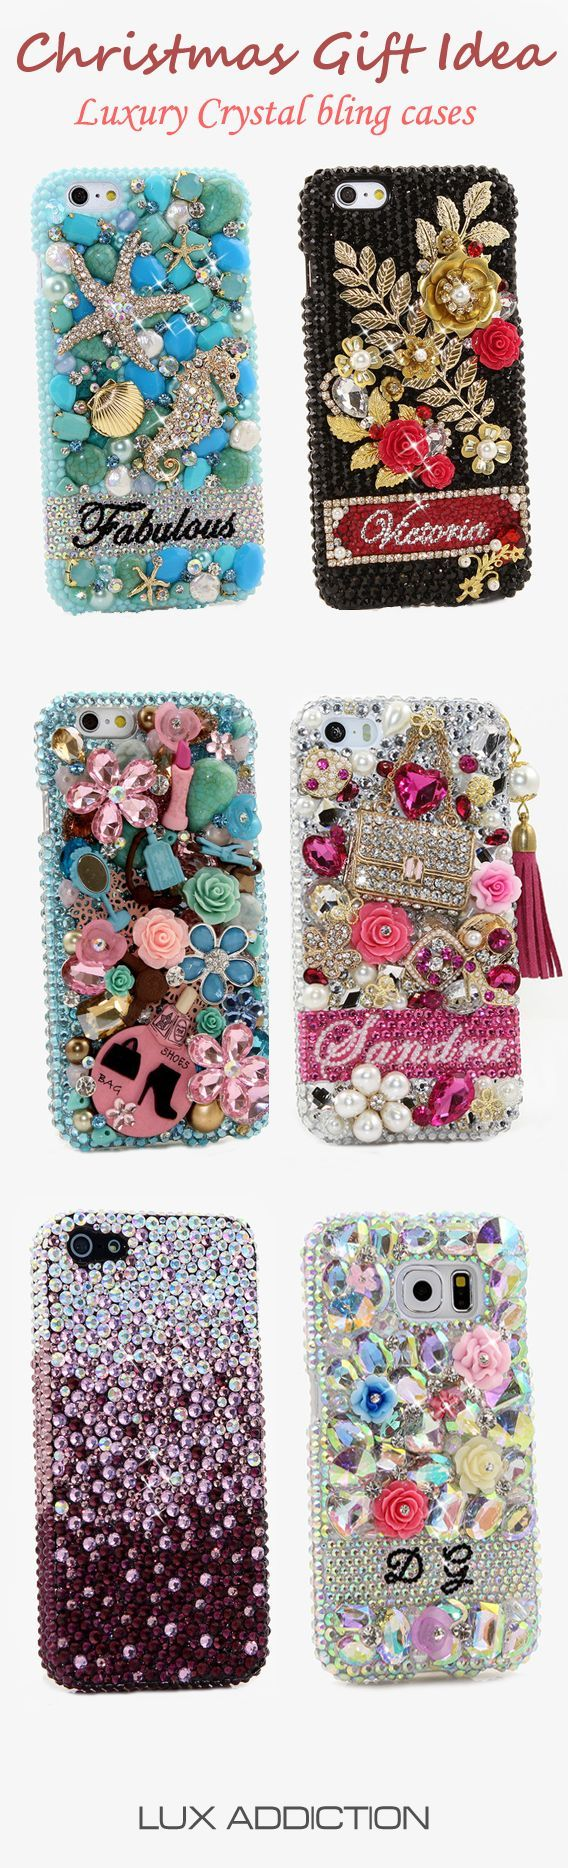 Luxury Crystals Bling Cases for iPhone, Samsung, Black Berry, Nokia, HTC, LG, Motorola and Sony. Our designs are 100% hand crafted. These Bling phone cases will be best Christmas Gift for you & your family. See more phone case designs on http://www.luxaddiction.com/collections/personallized-designs